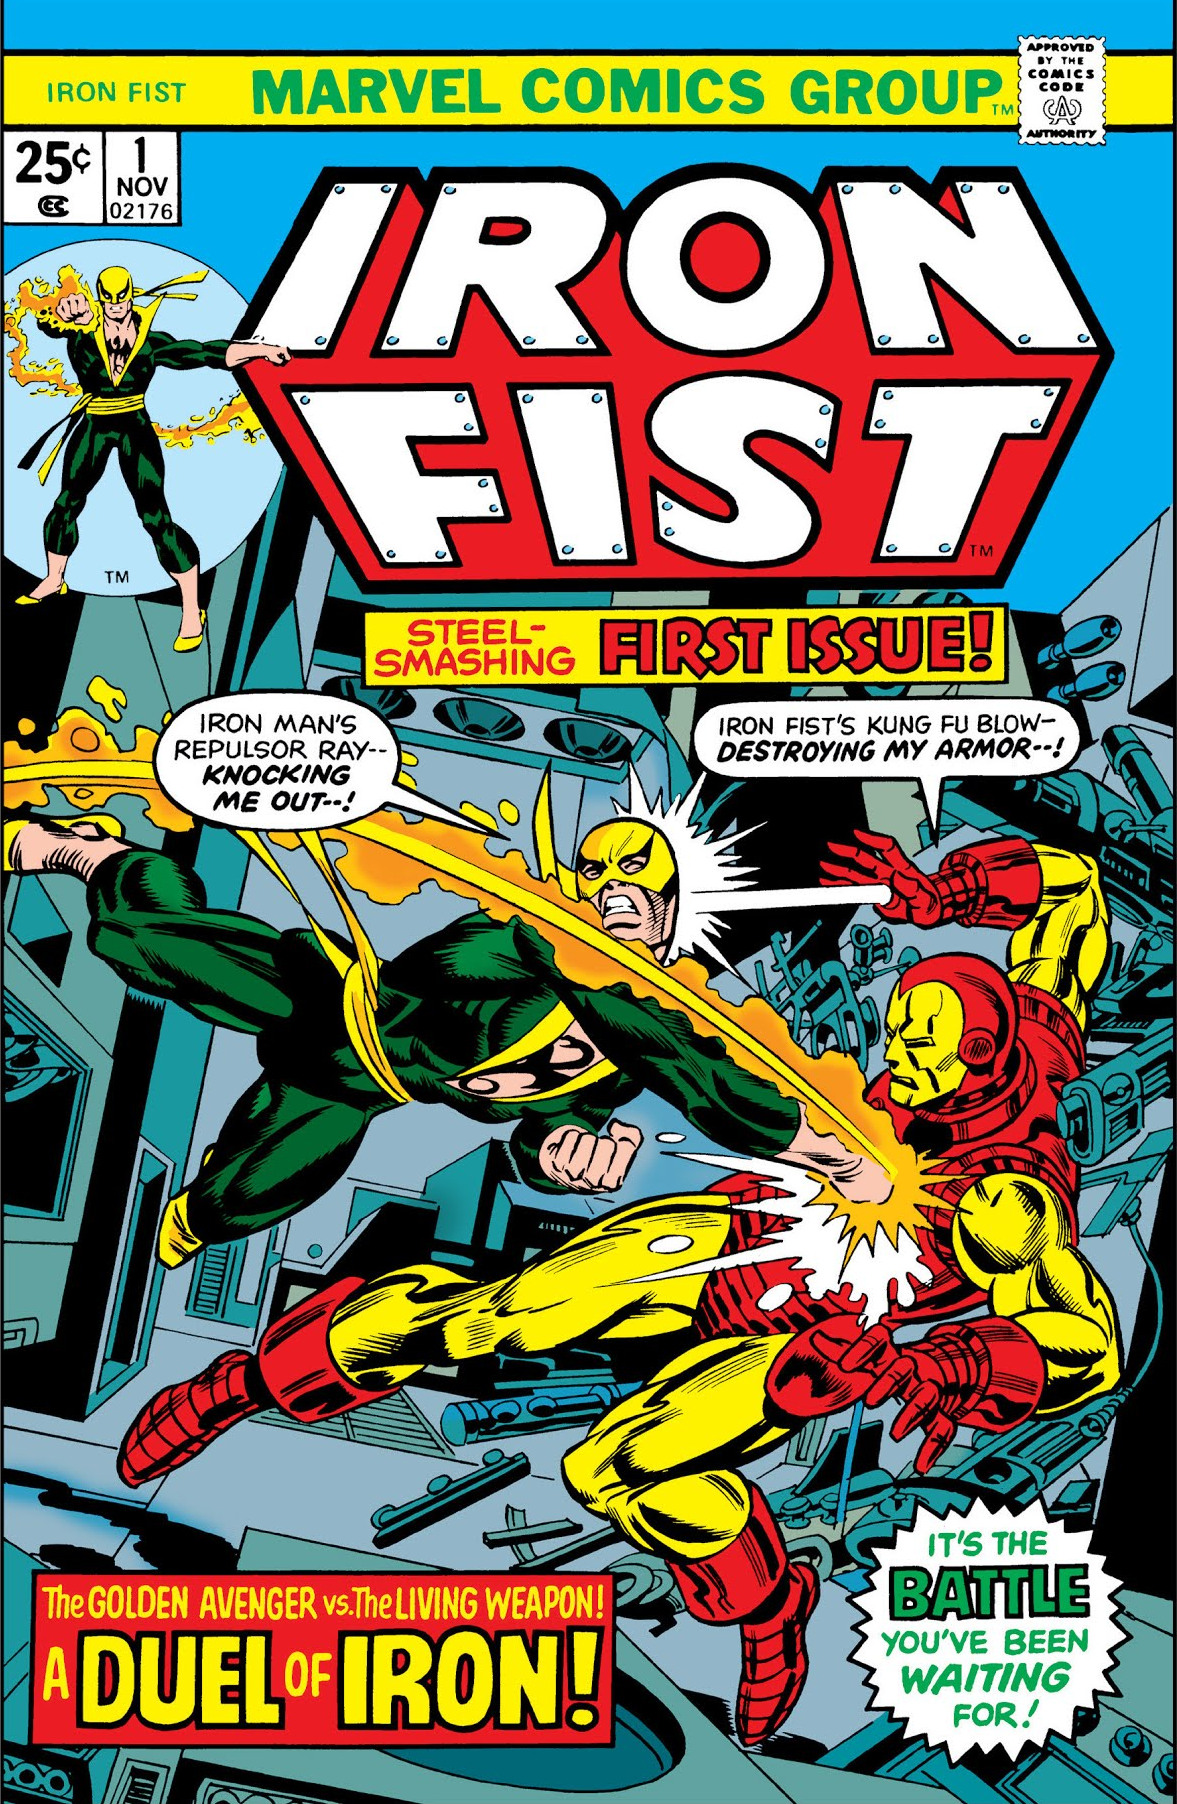 Iron Fist Vol 1 1